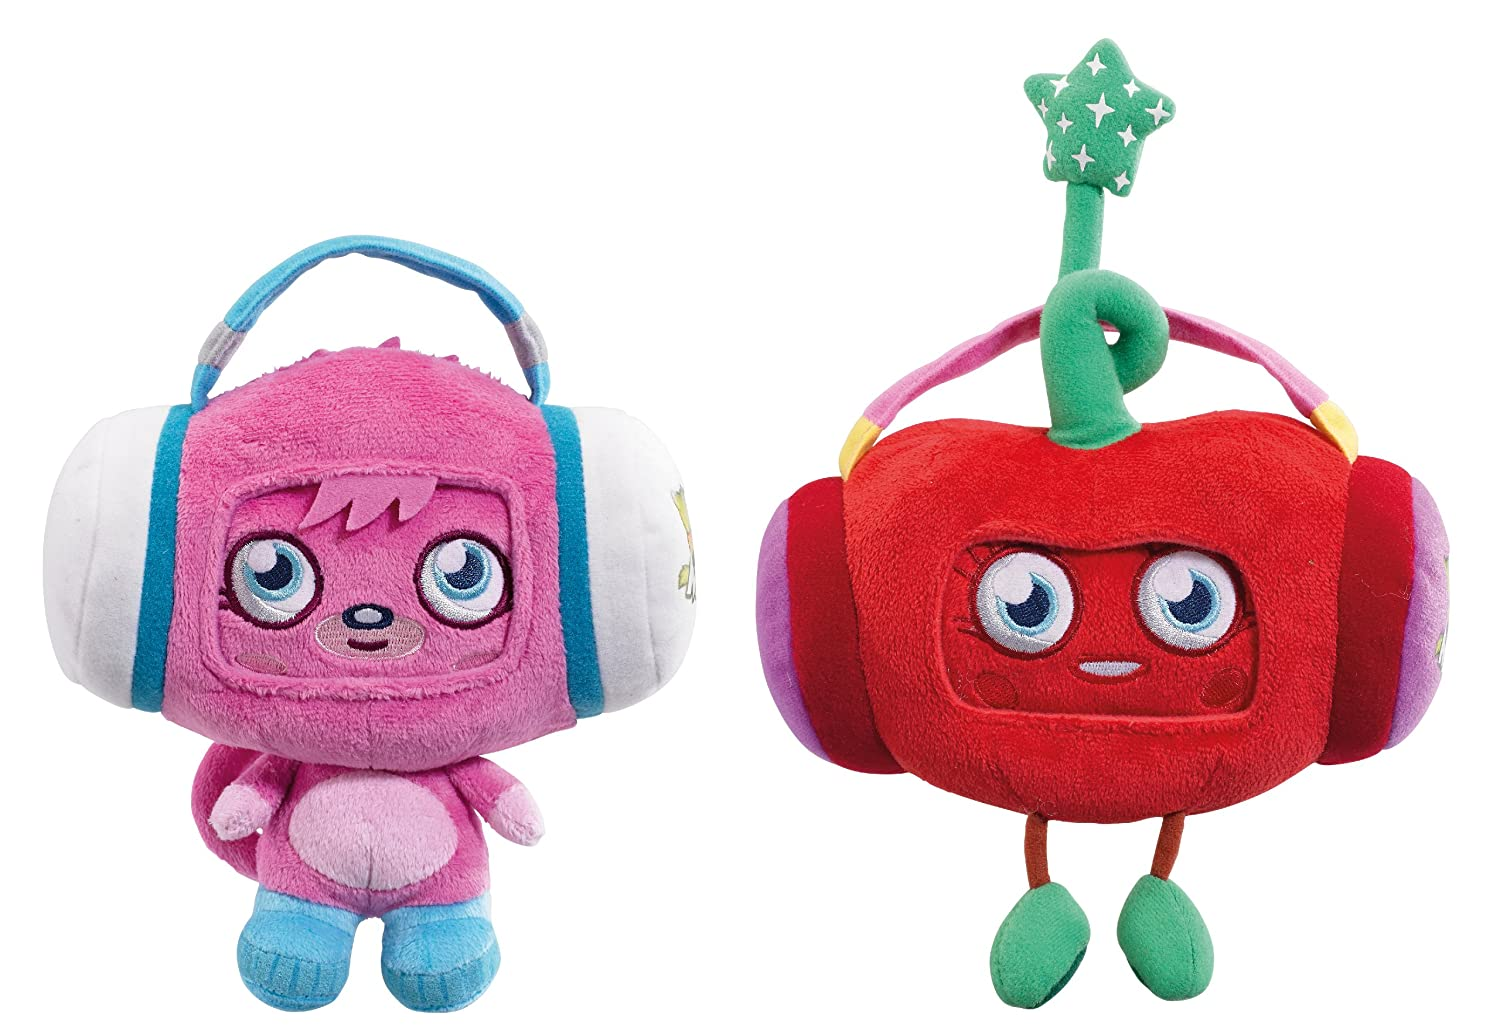 Moshi monsters app monster poppet and luvli amazon co uk toys games